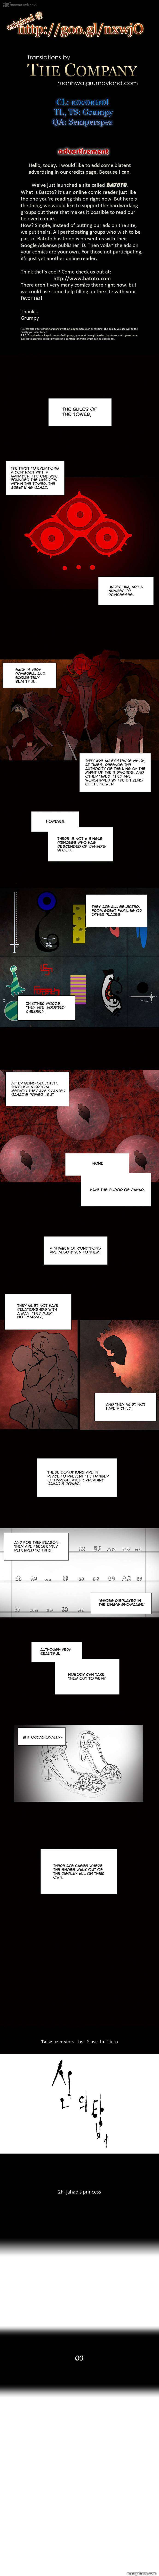 Tower of God 33 Page 1